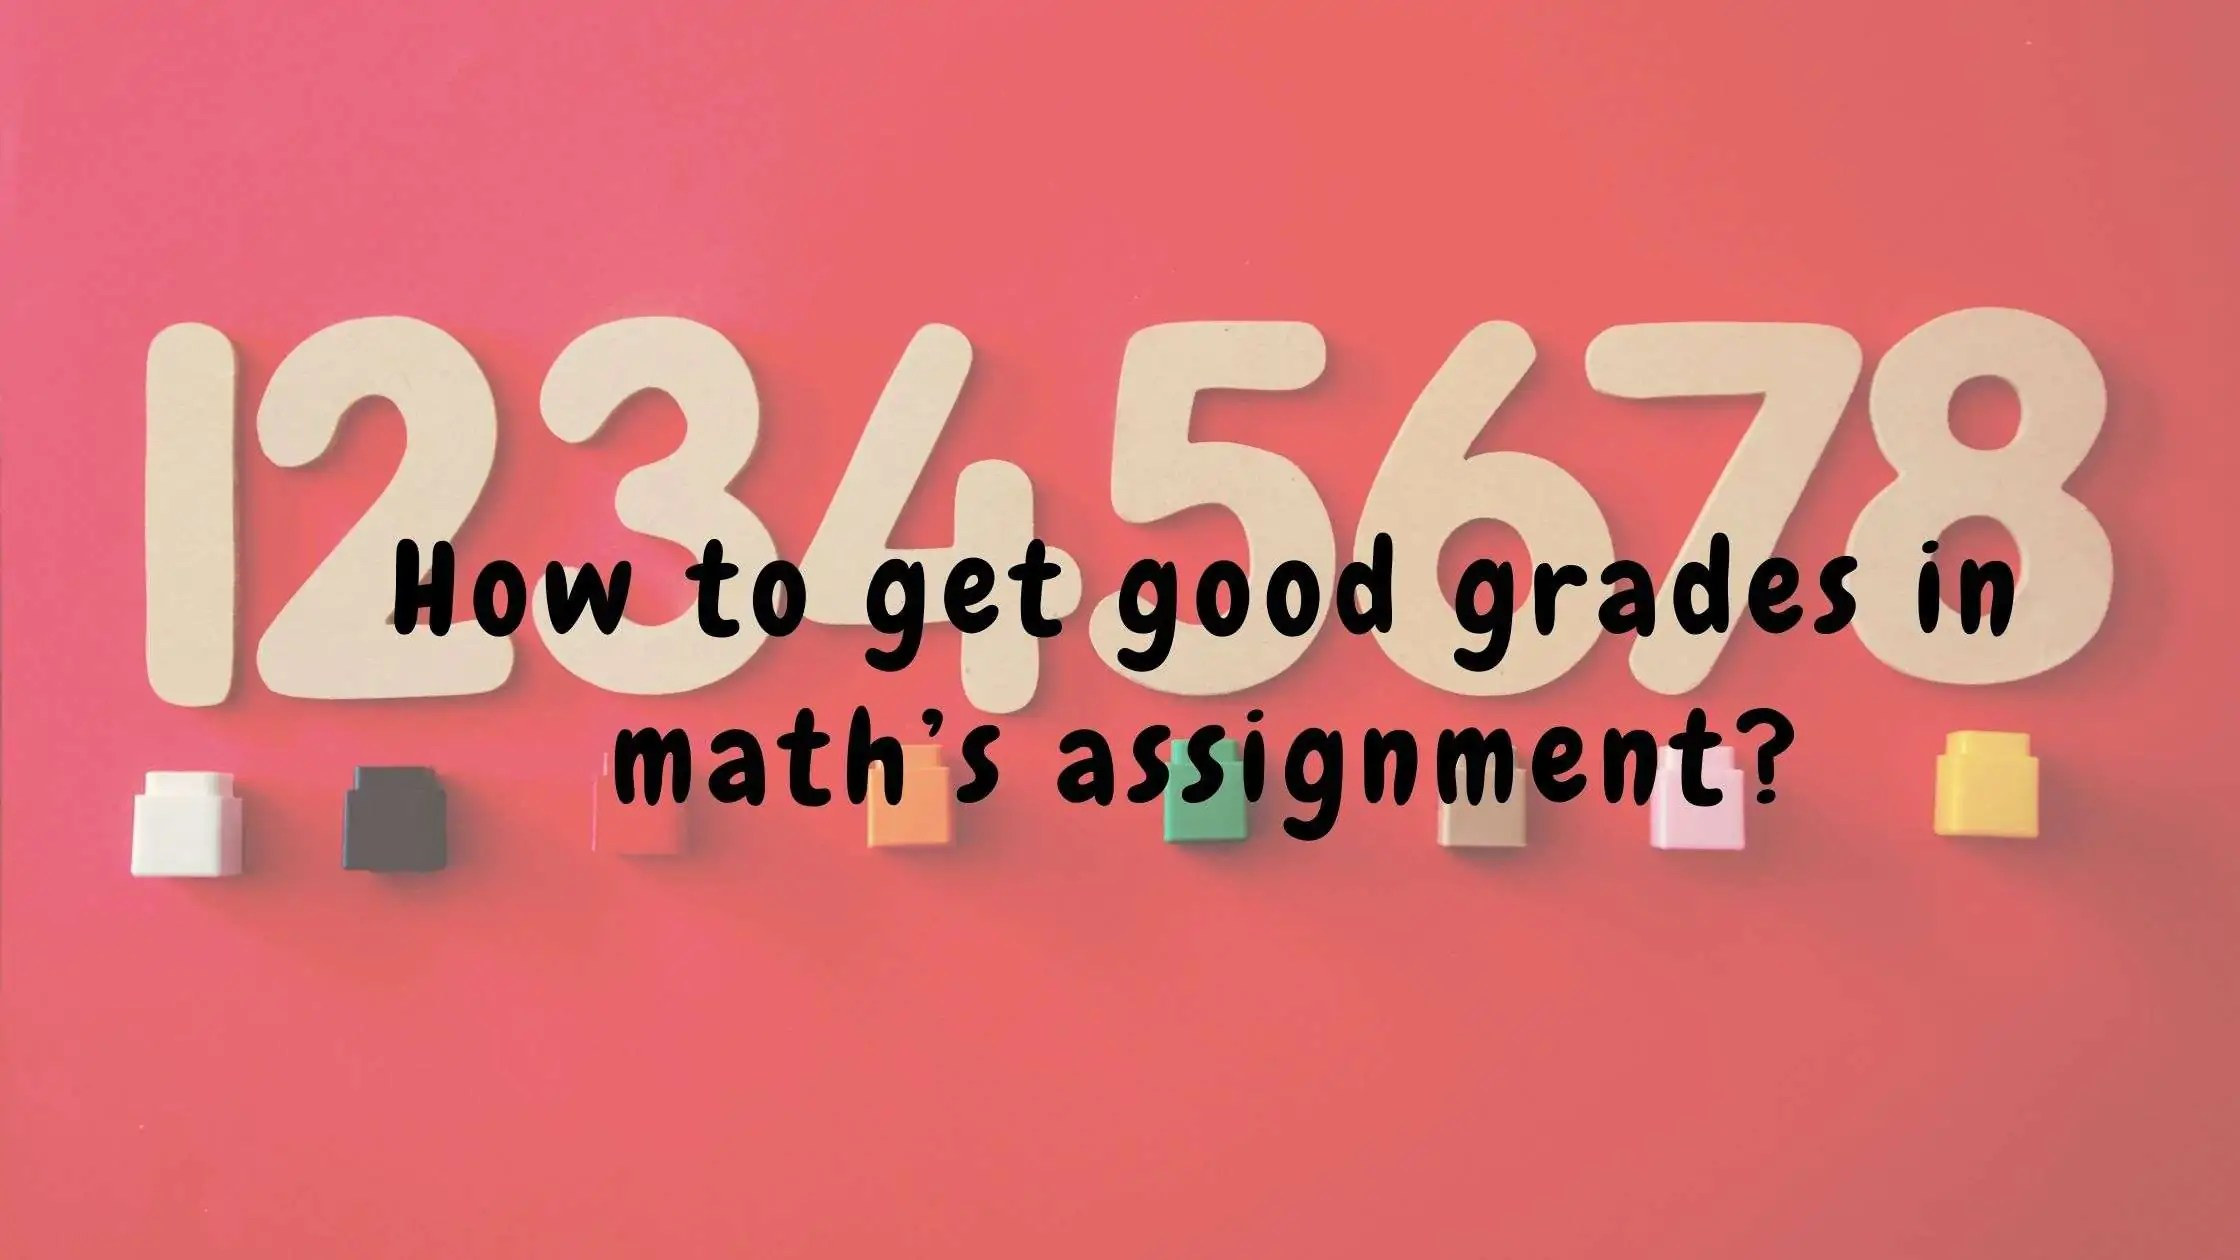 How to get good grades in math assignment